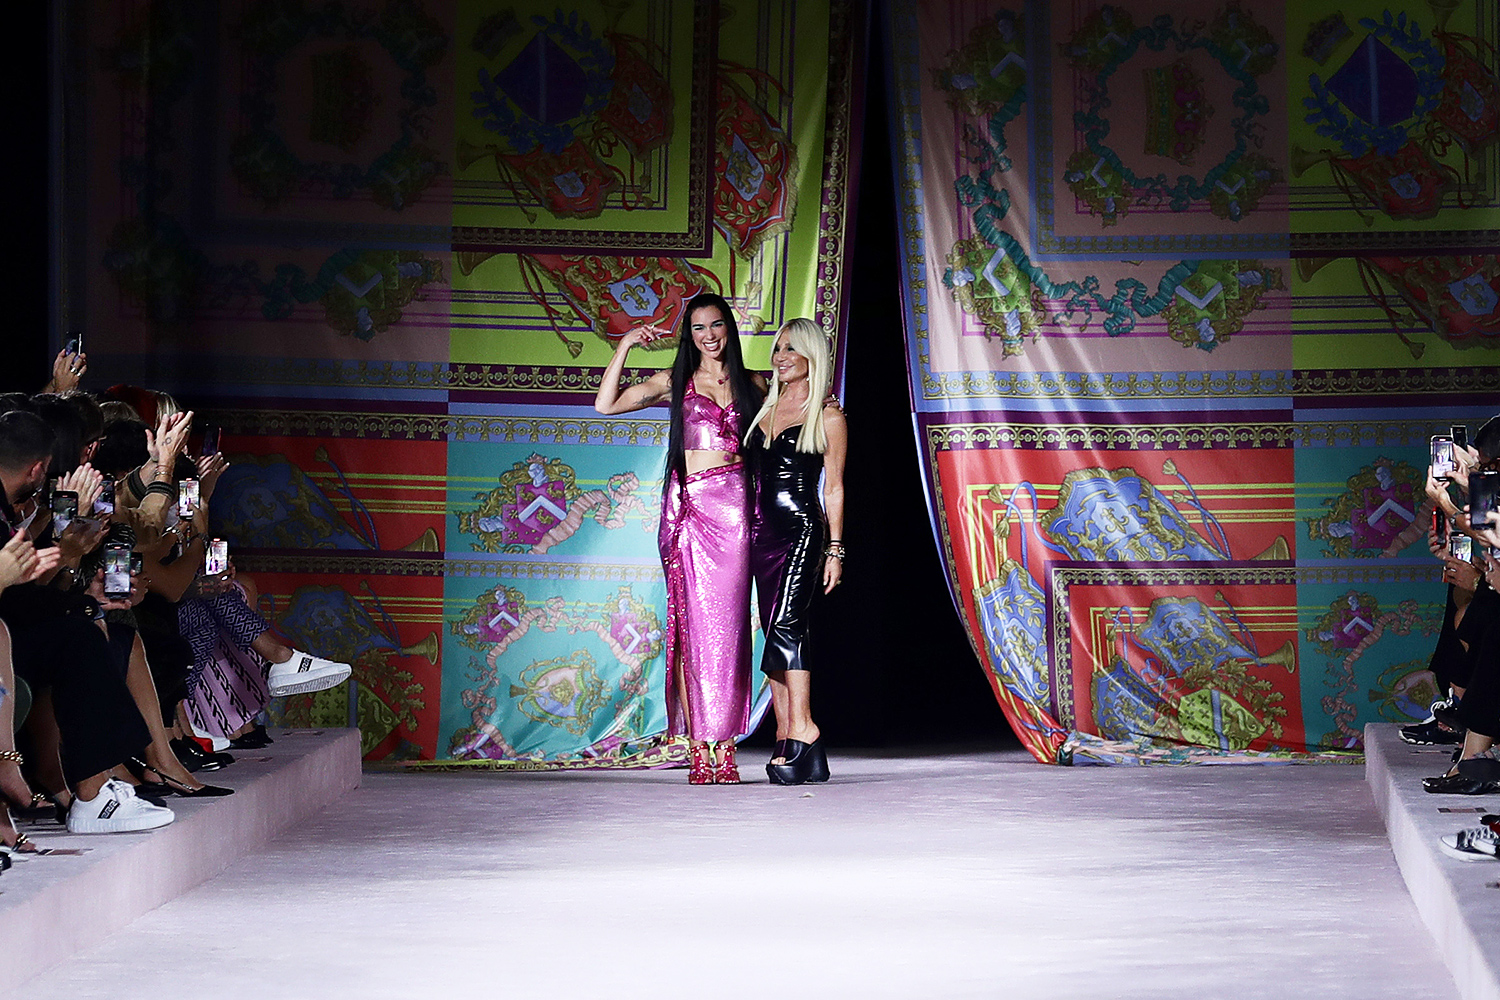 Dua Lipa and fashion designer Donatella Versace acknowledge the applause of the audience at the runwayat the Versace fashion show during the Milan Fashion Week - Spring / Summer 2022 on September 24, 2021 in Milan, Italy.